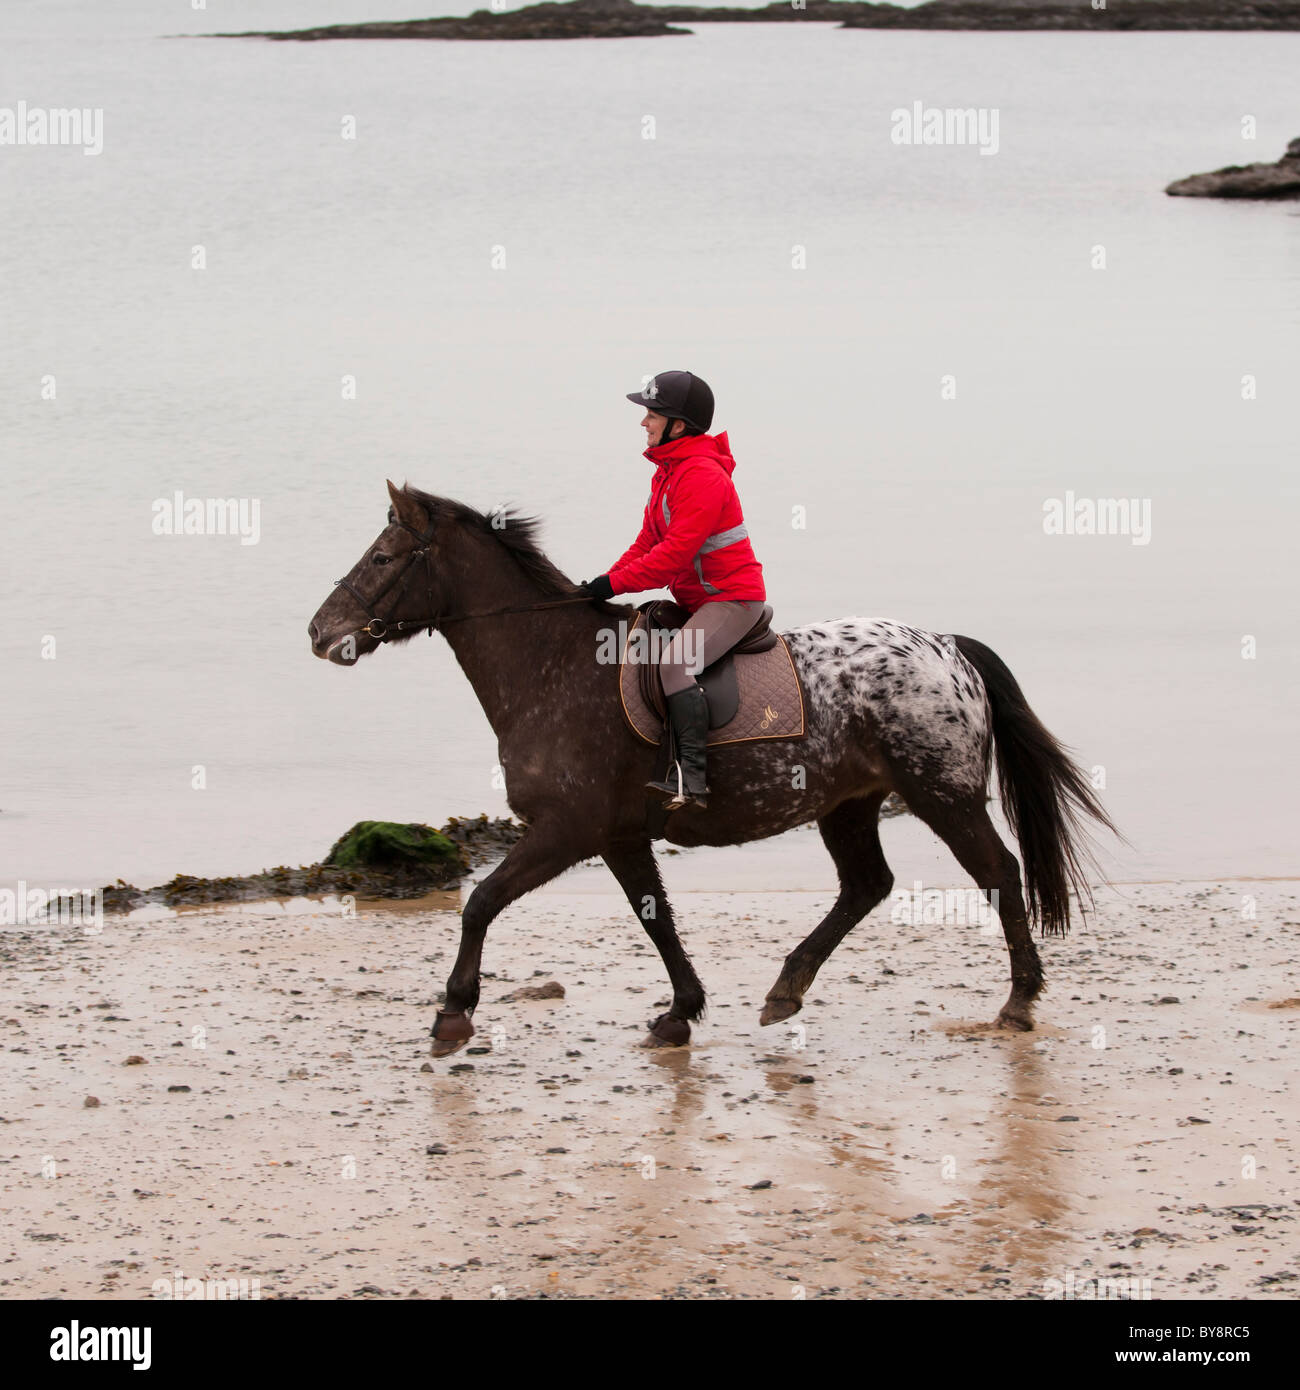 A woman riding a horse on the beach at Trearddur Bay, Anglesey, North Wales UK - Stock Image